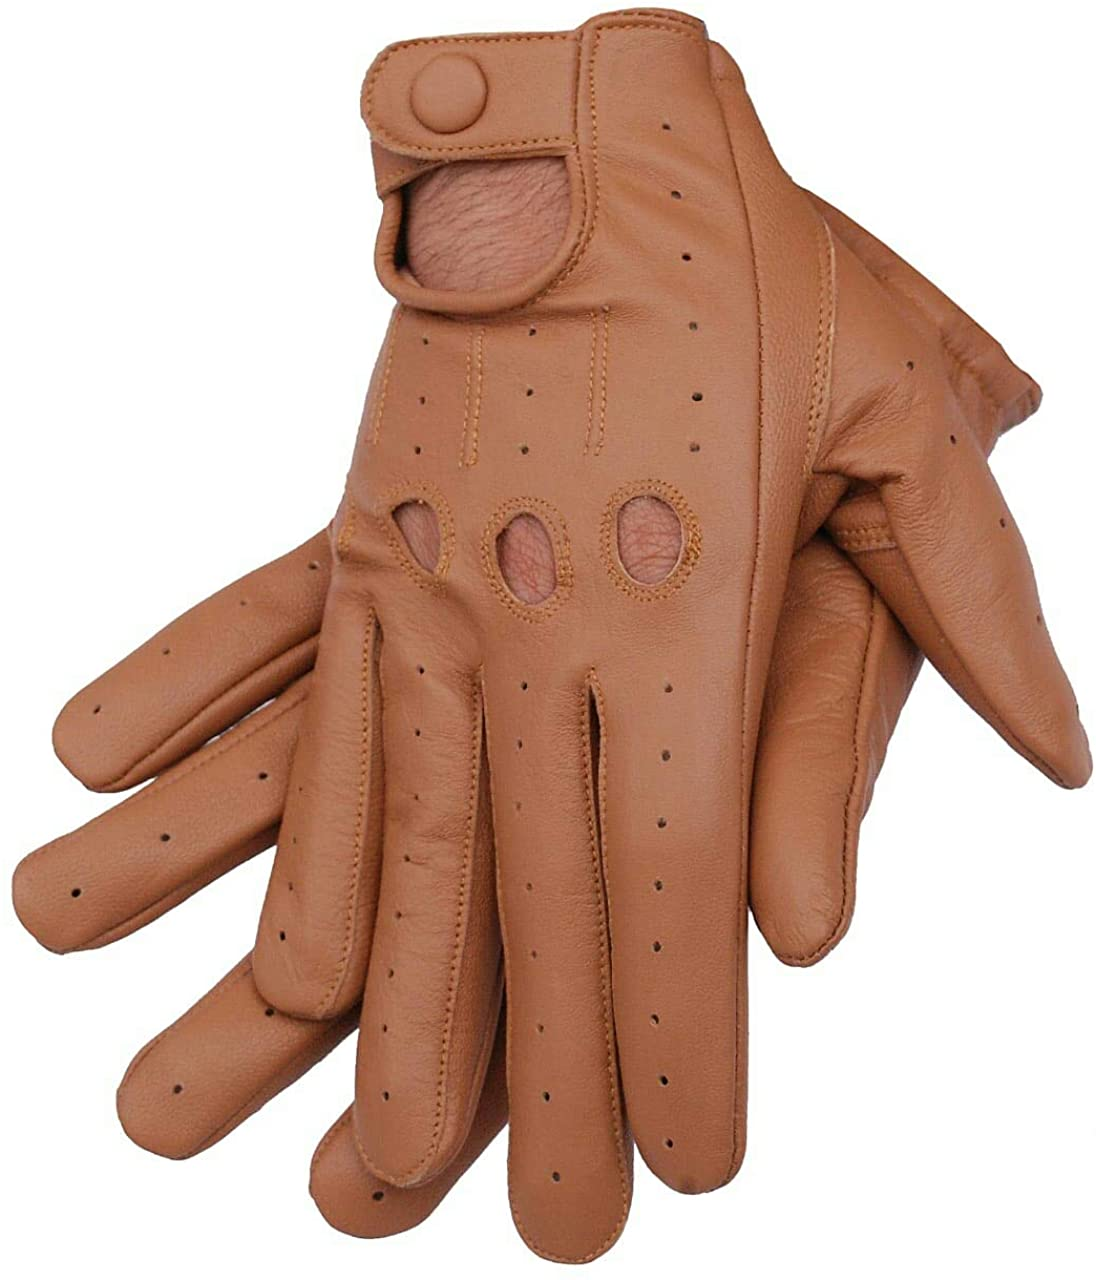 Men's Genuine lambskin Premium Quality Leather Driving Gloves (Saddle Brown, Small)